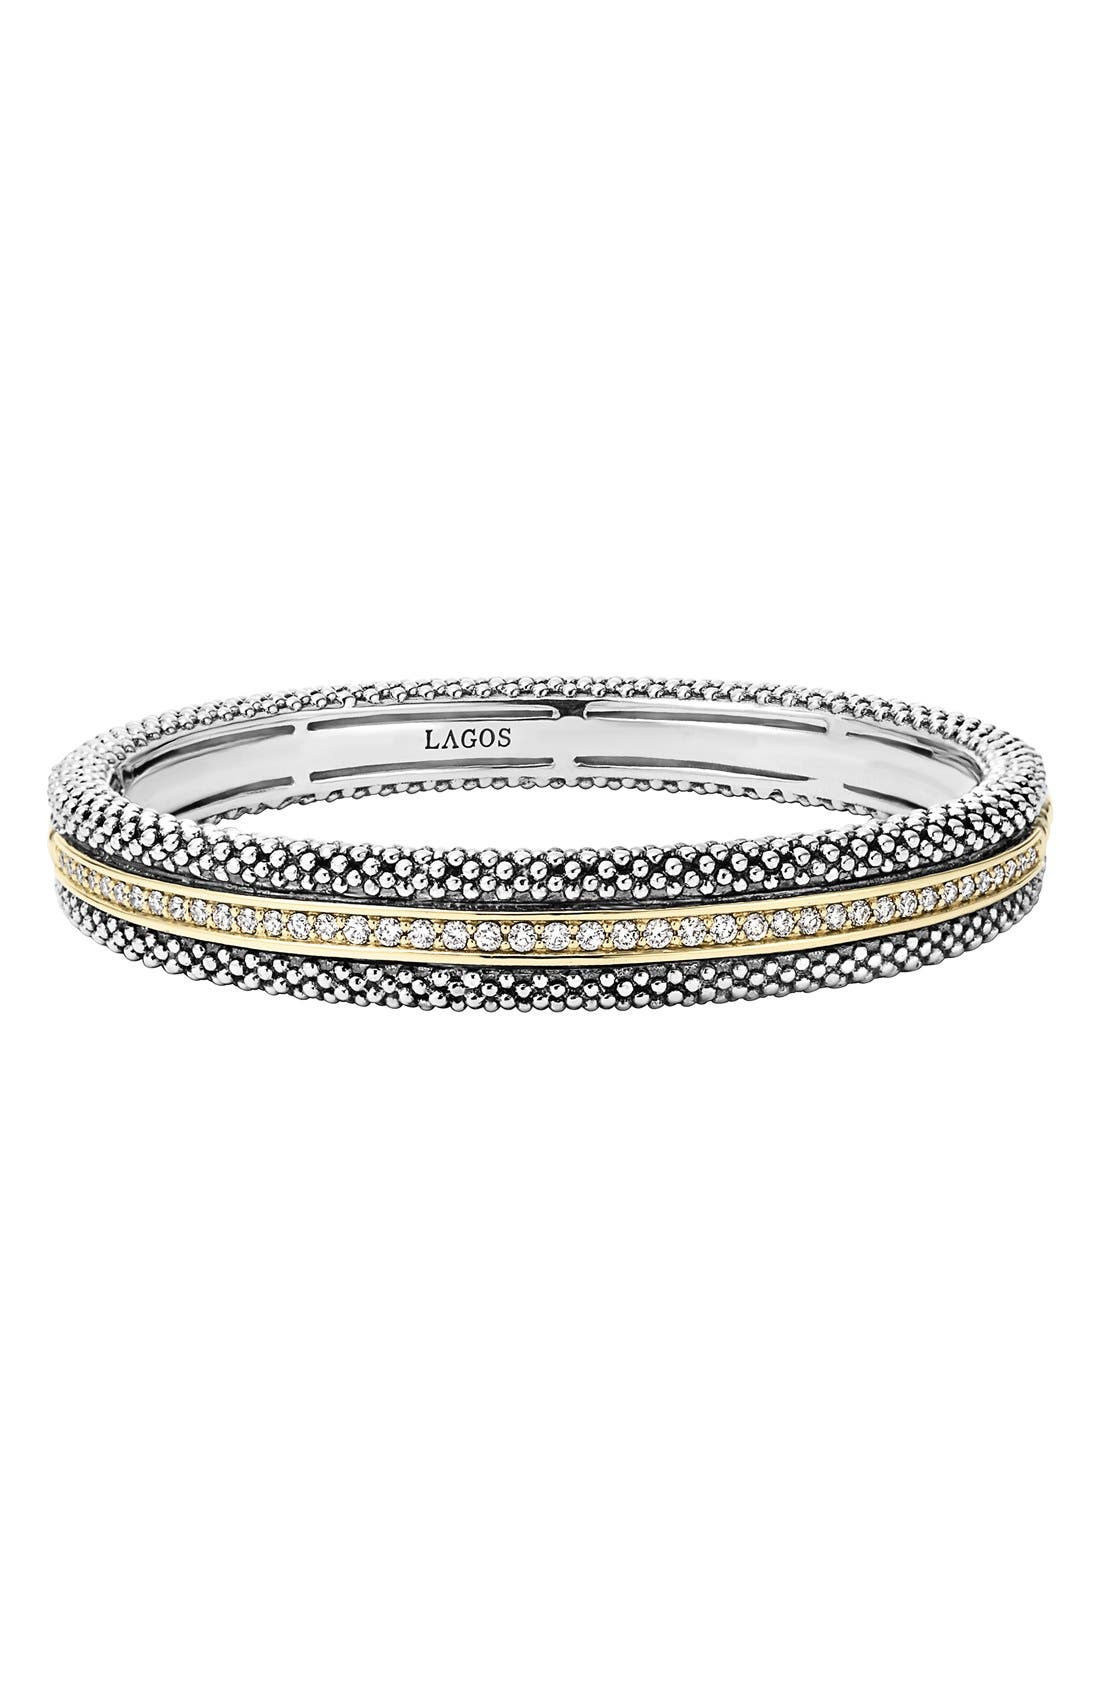 LAGOS Diamond Caviar Bangle Bracelet